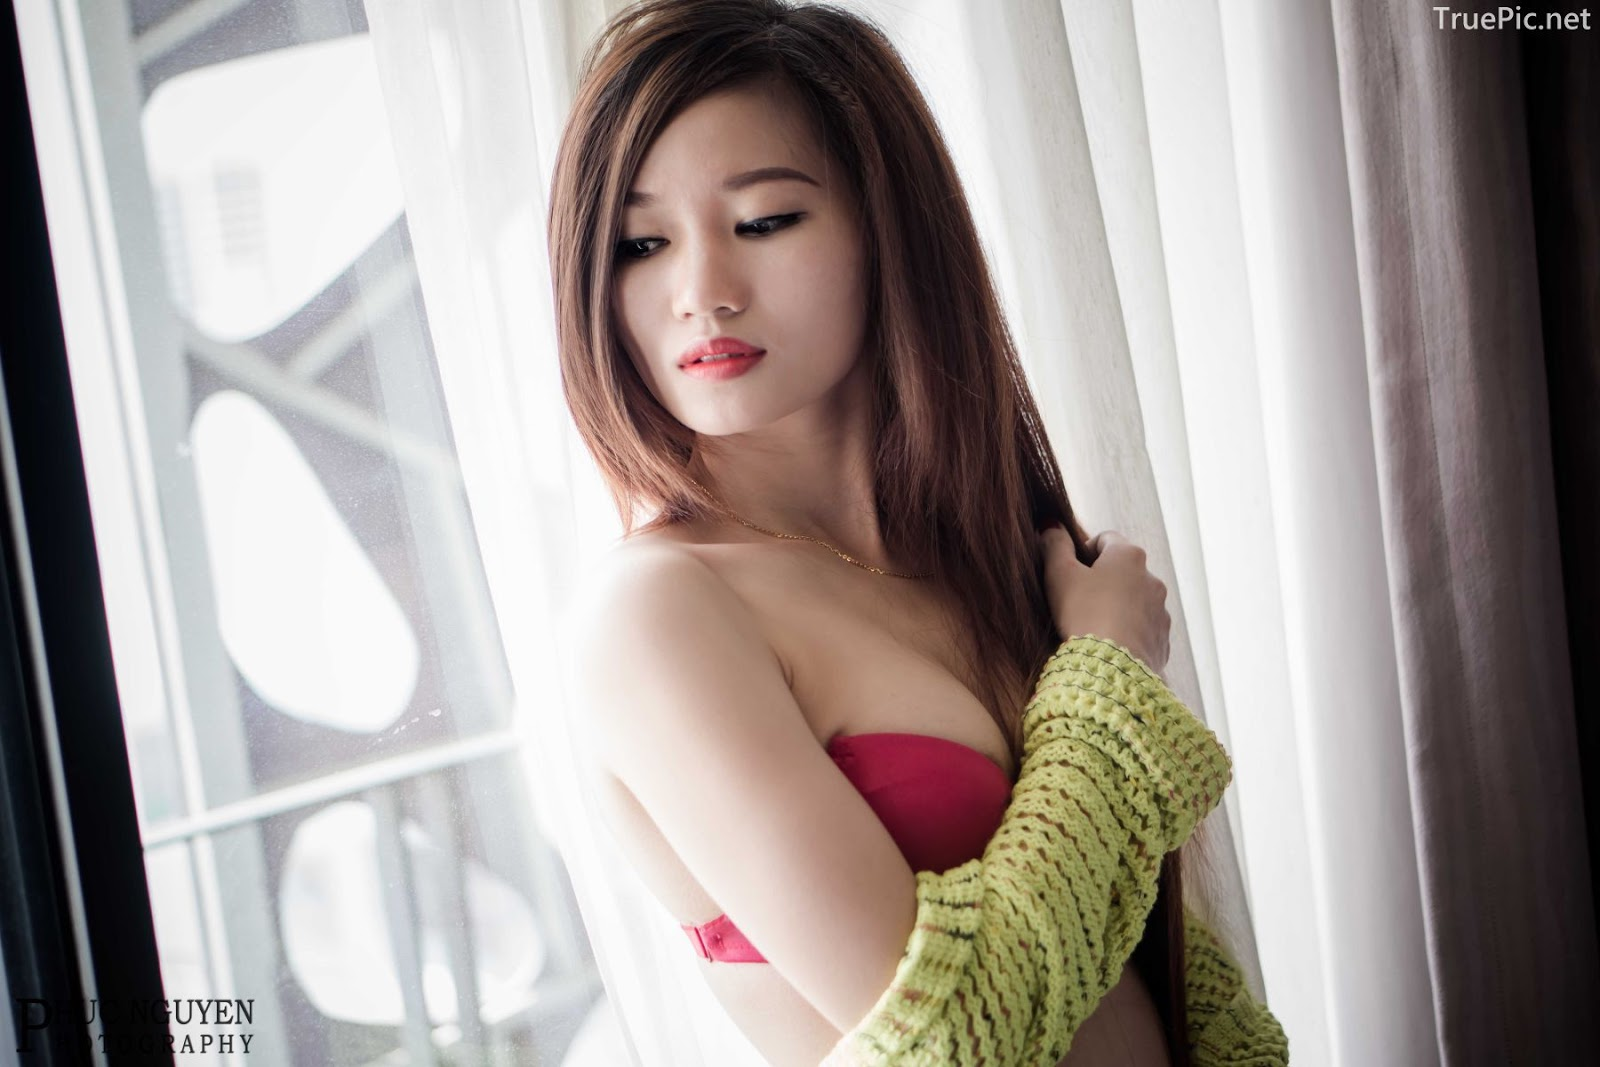 Super hot photos of Vietnamese beauties with lingerie and bikini - Photo by Le Blanc Studio - Part 5 - Picture 10